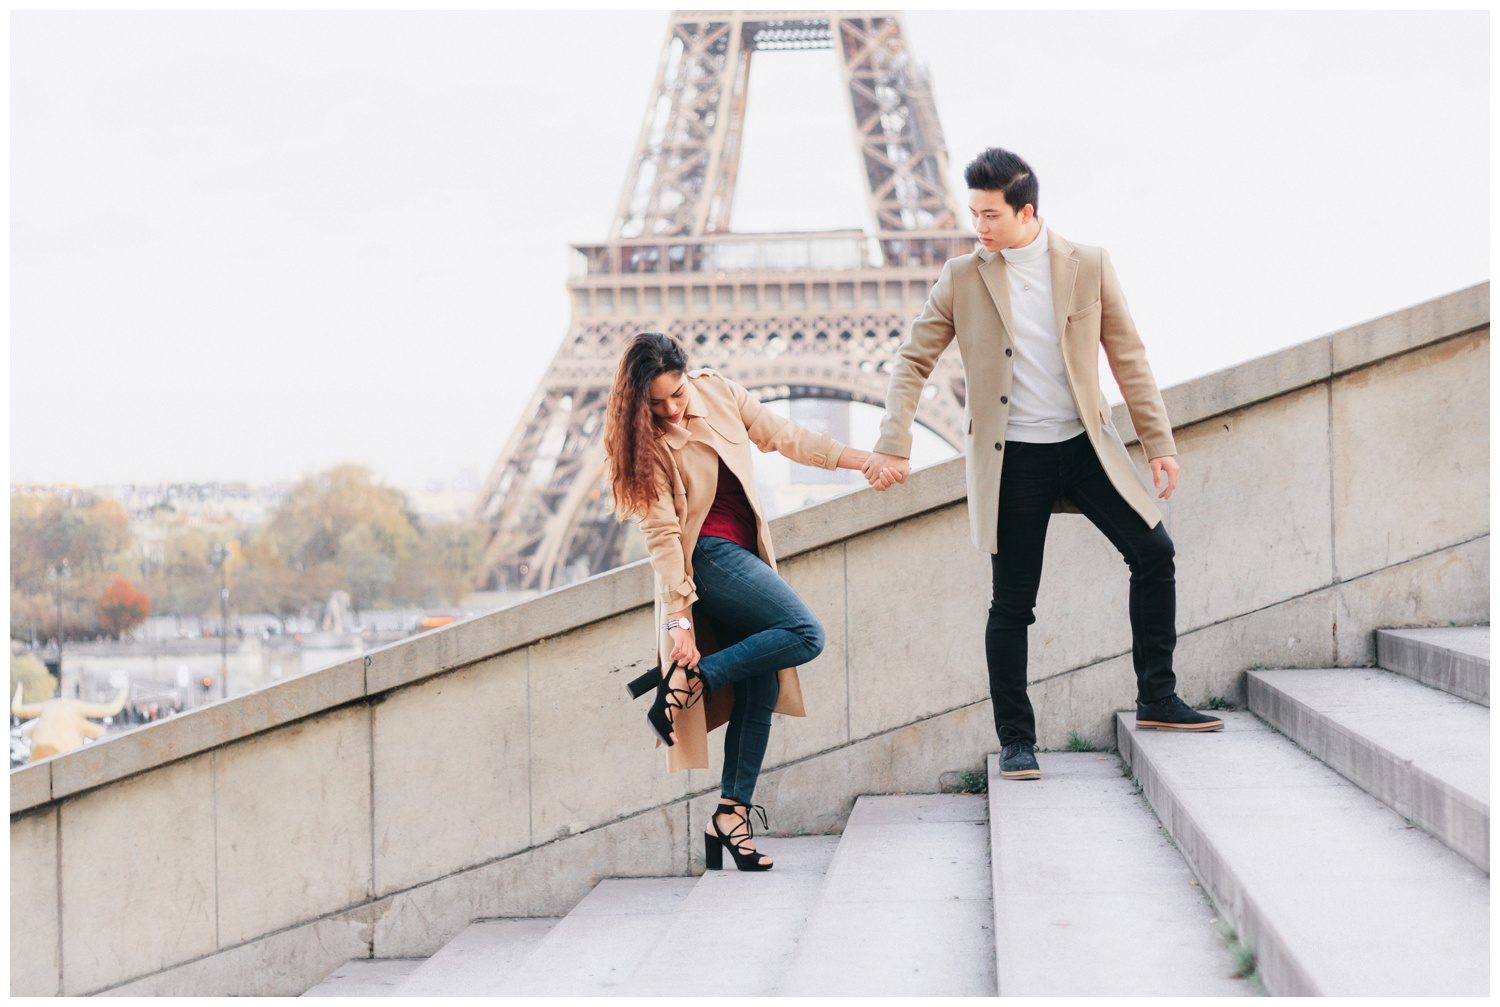 paris-eiffel-tower-trocadero-steps-engagement-session.jpg